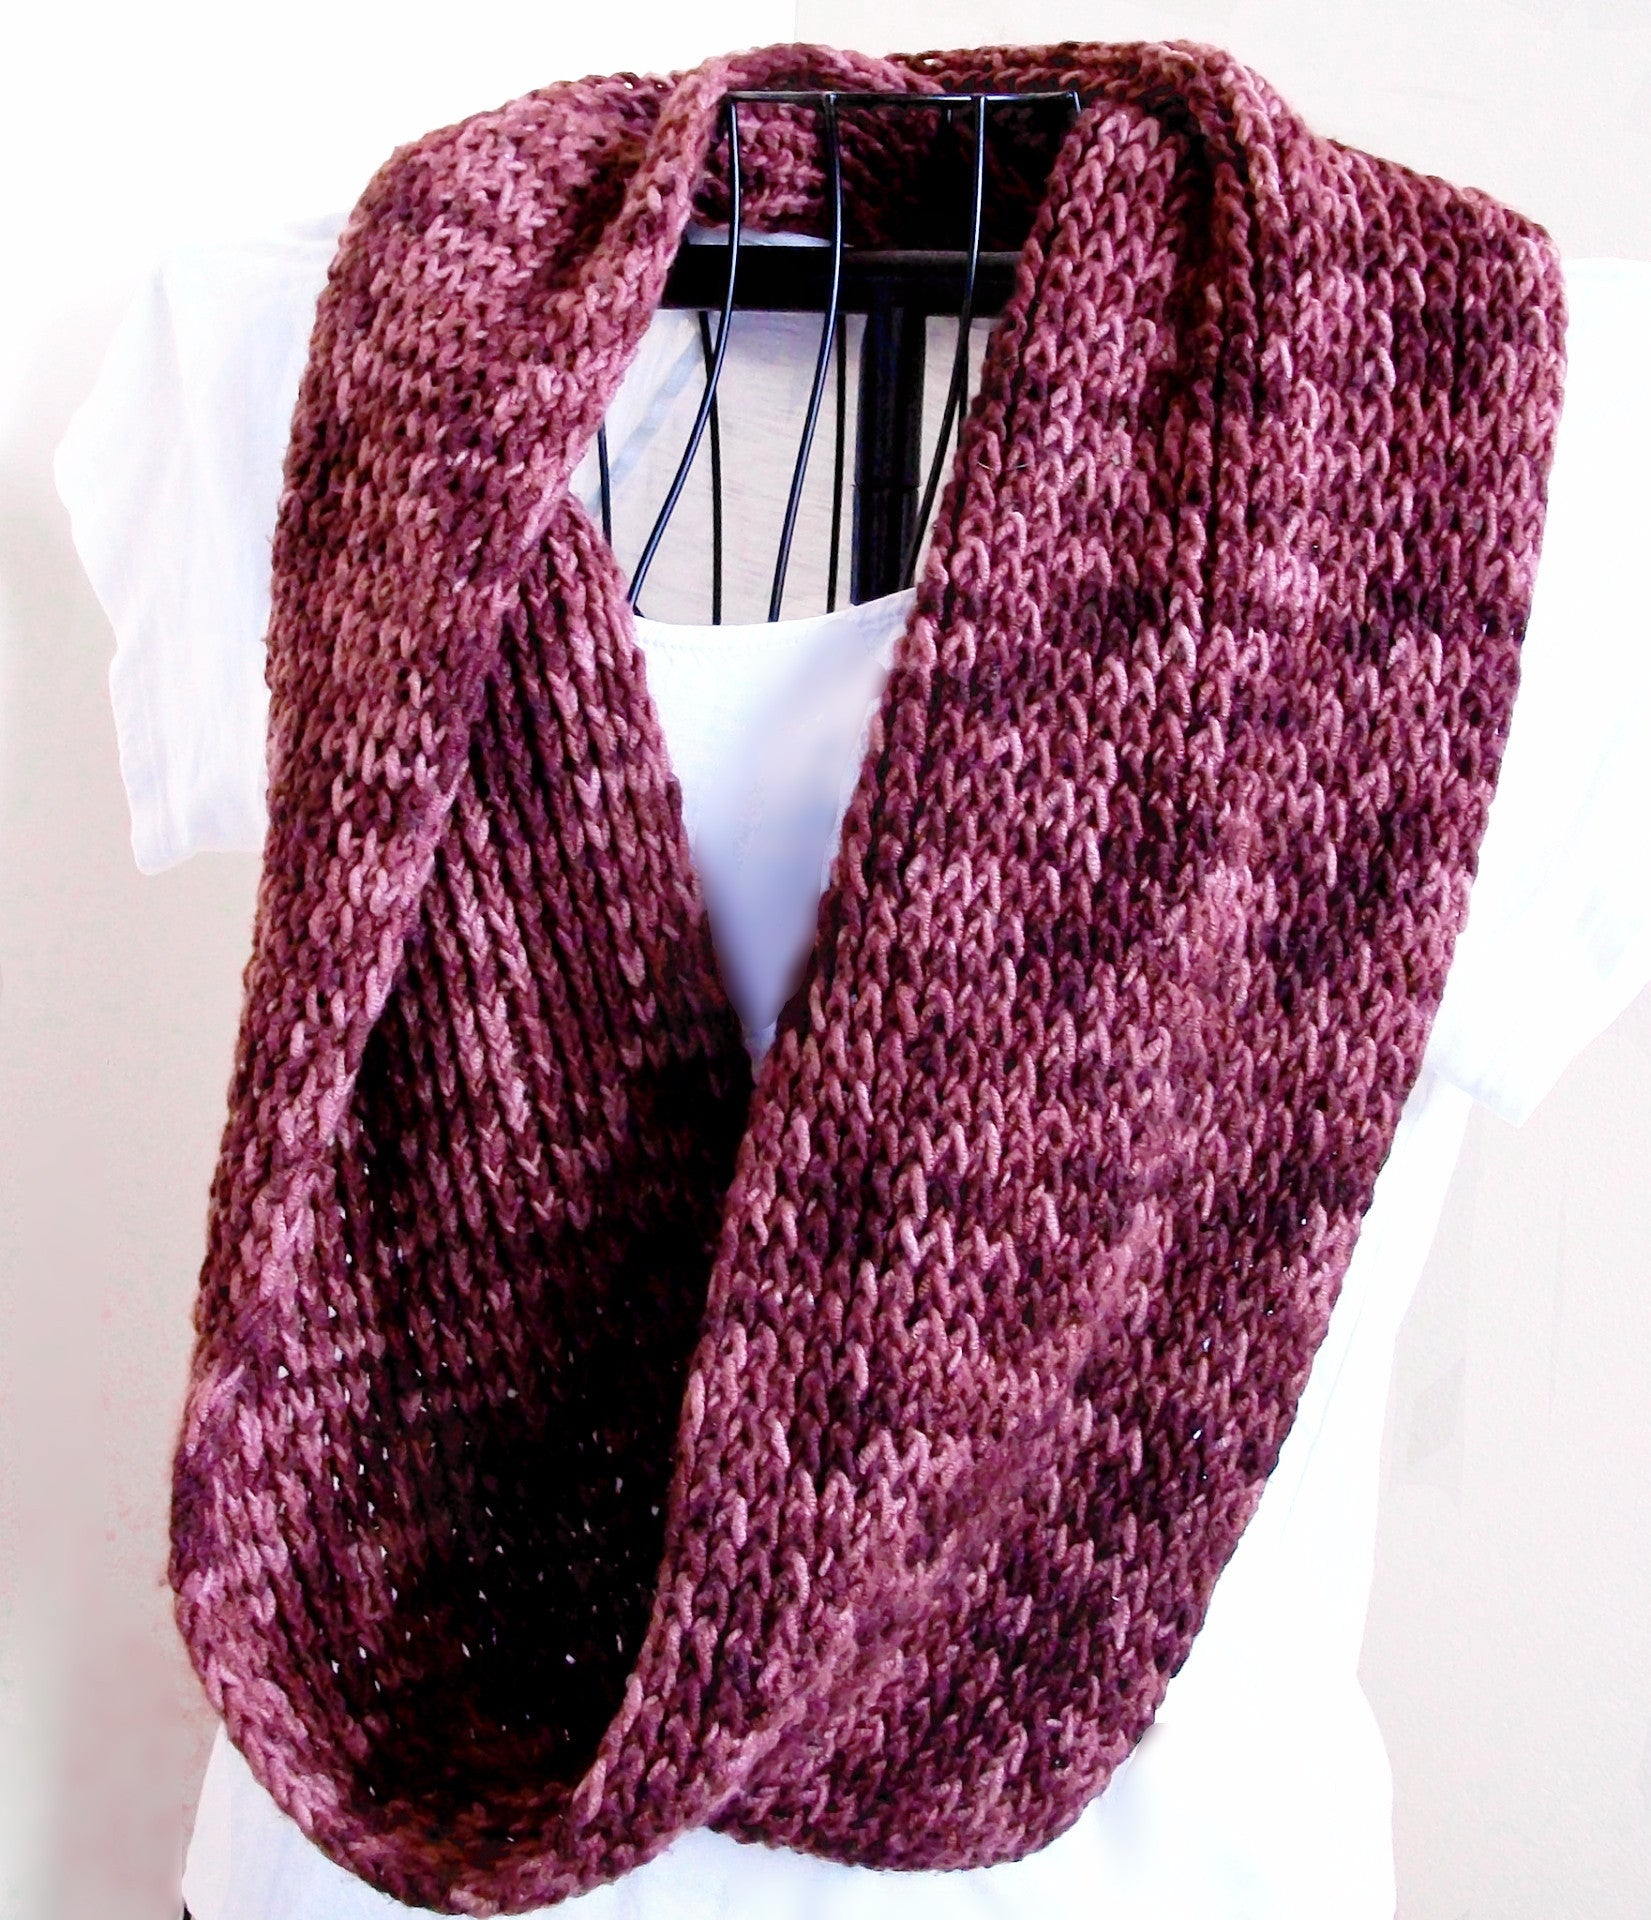 Knitting Pattern Twisted Scarf : Pretty Twisted Ribbed Scarf Knitting Pattern   Bluestockinette